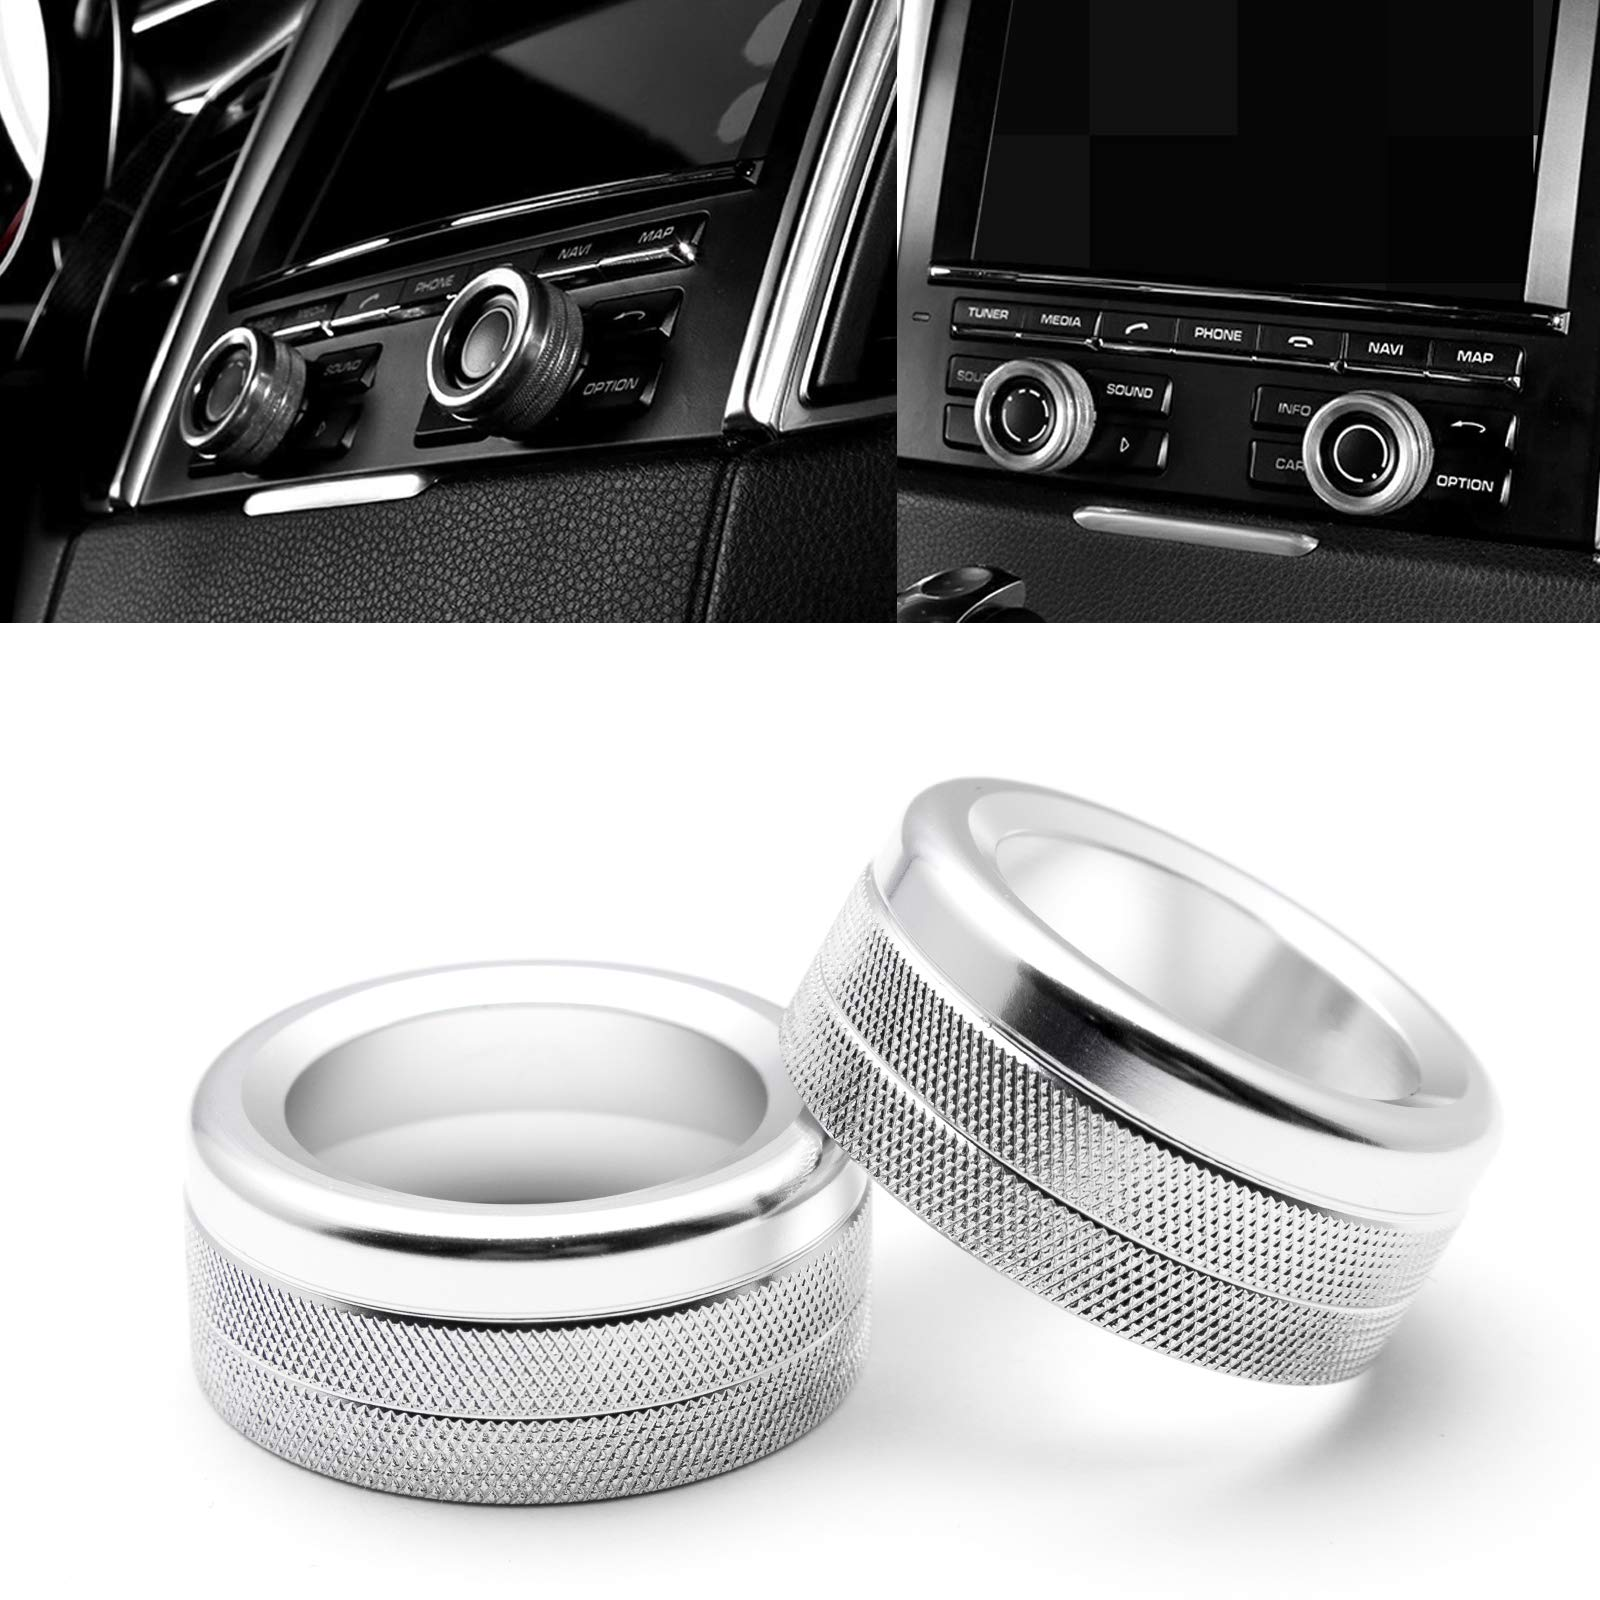 Xotic Tech 2X Silver Anodized Aluminum AC Climate Control Knob Ring Volume Knob Decor Cover for Porsche Cayenne 2008-2017